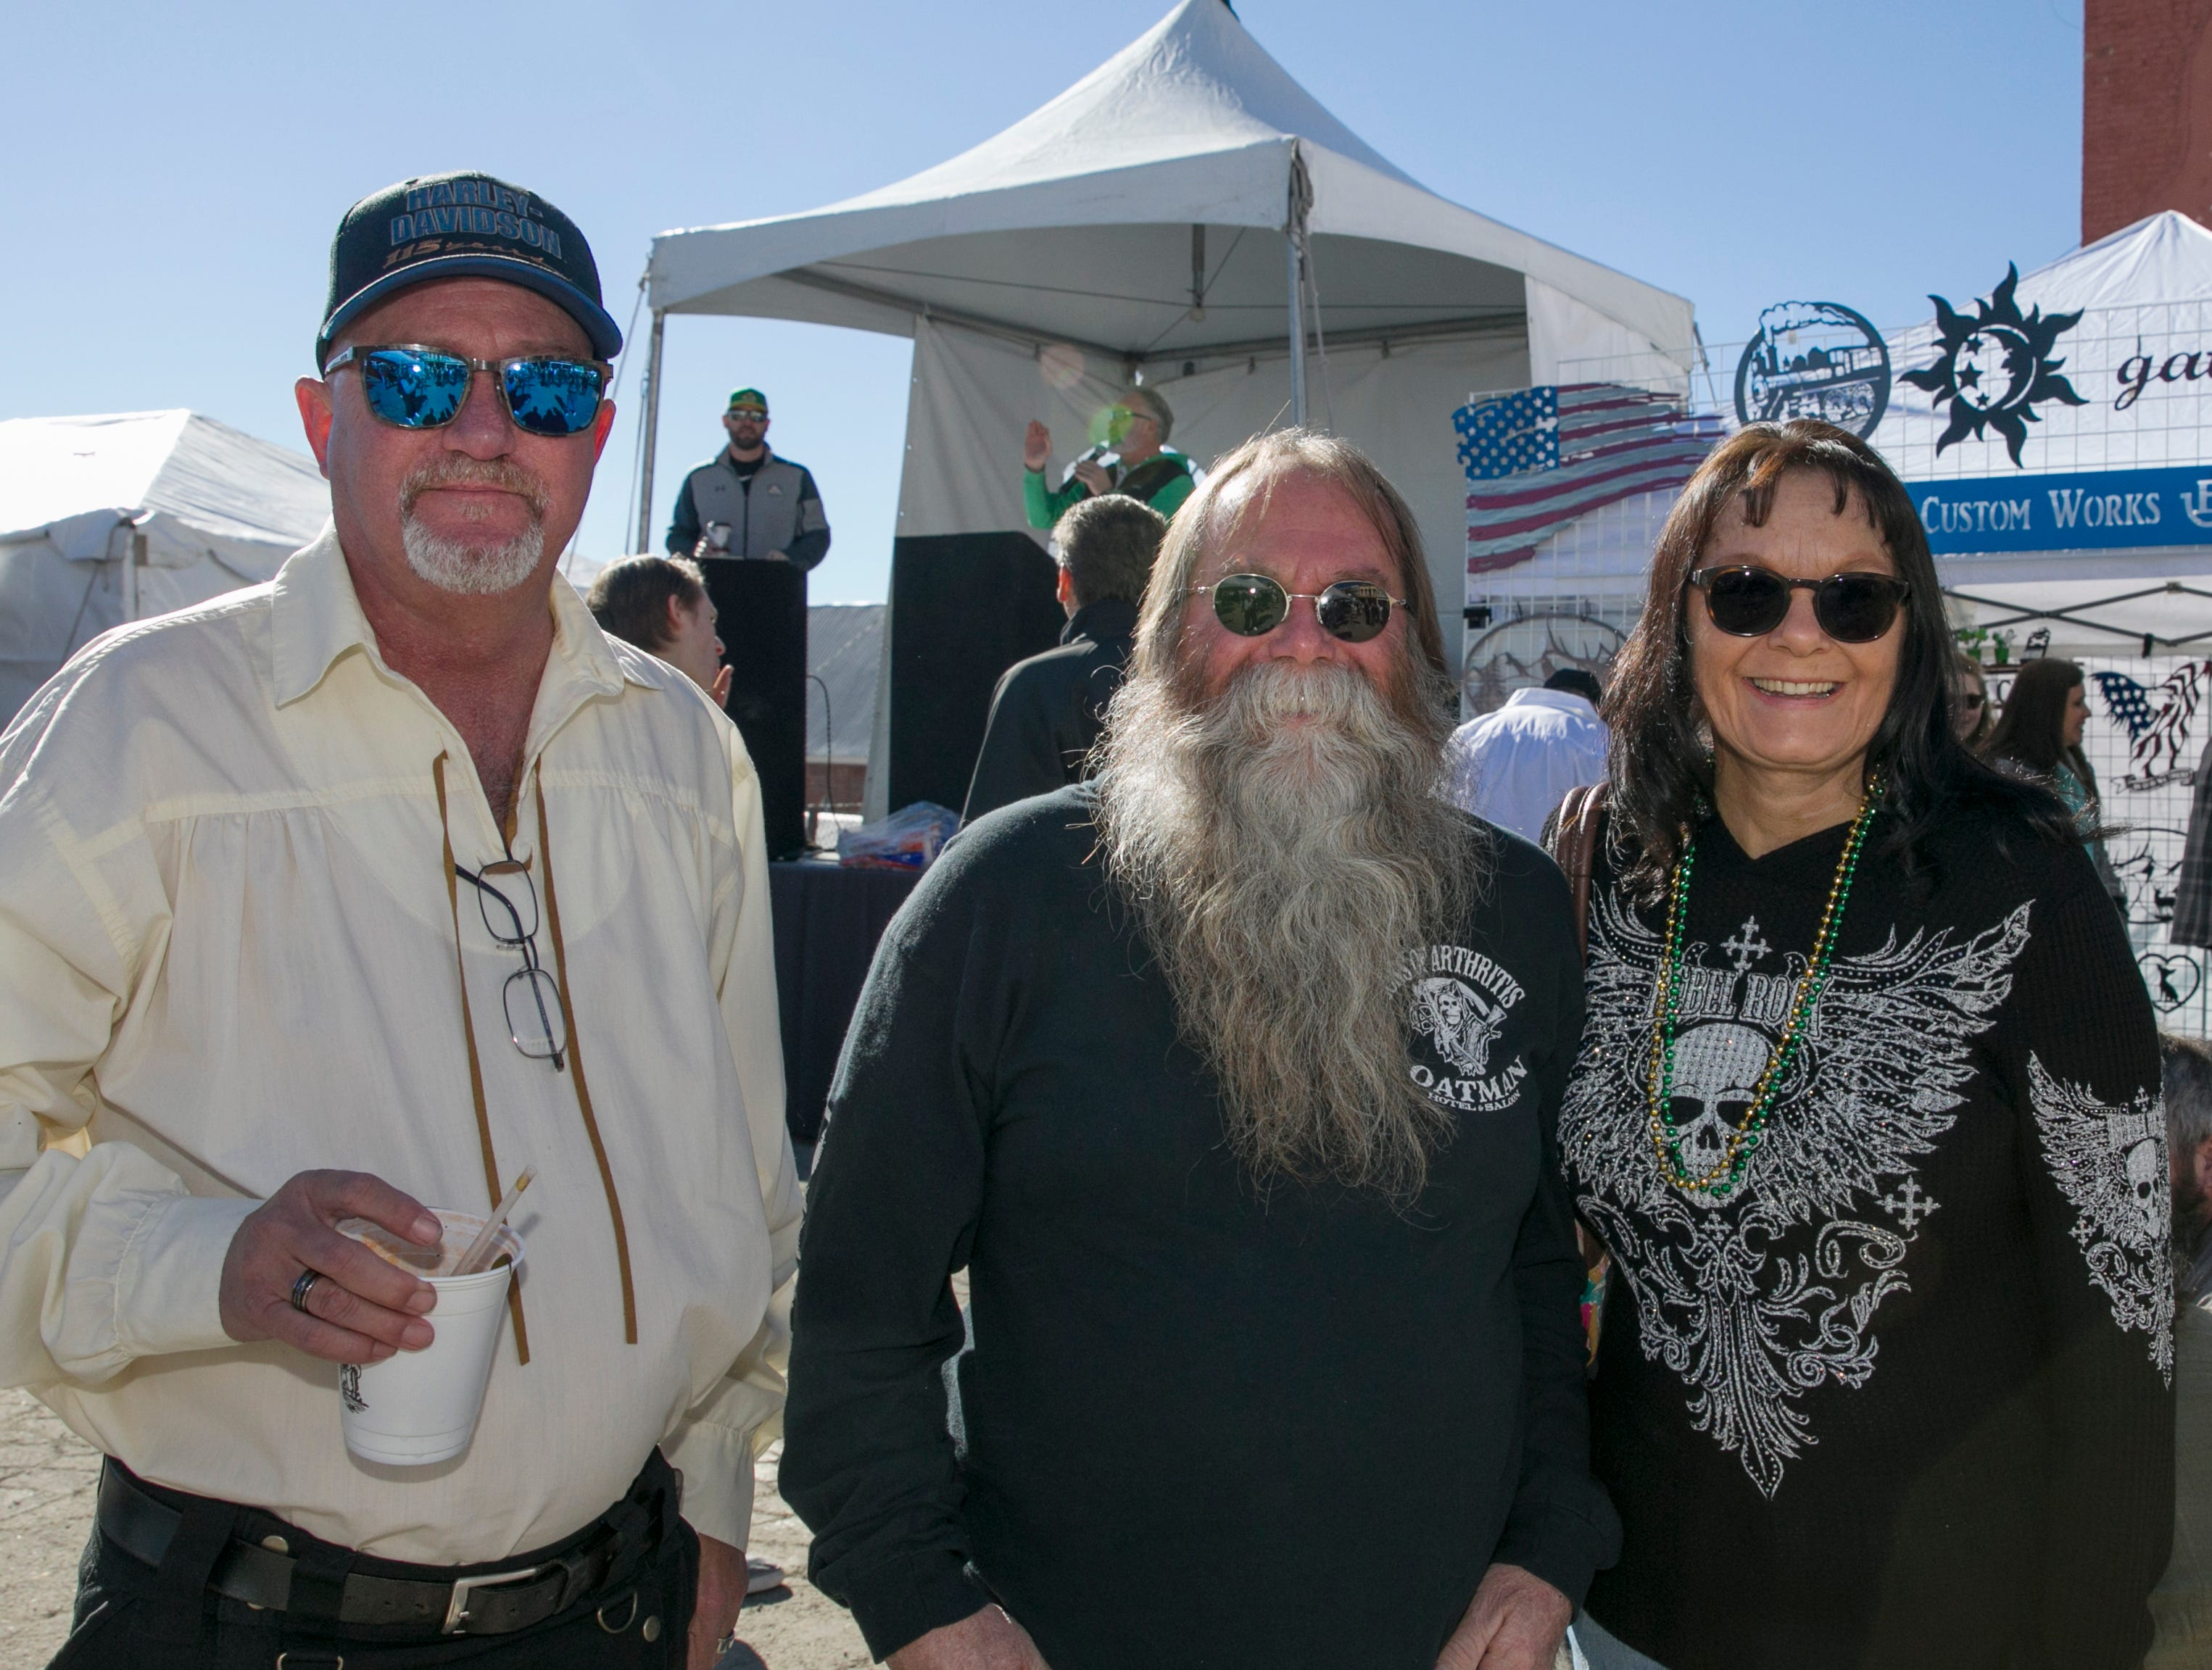 Rick, Mark and Debbie during the 28th annual Rocky Mountain Oyster Fry and St. Patrick's Day Parade in Virginia City, Nevada on Saturday March 16, 2019.